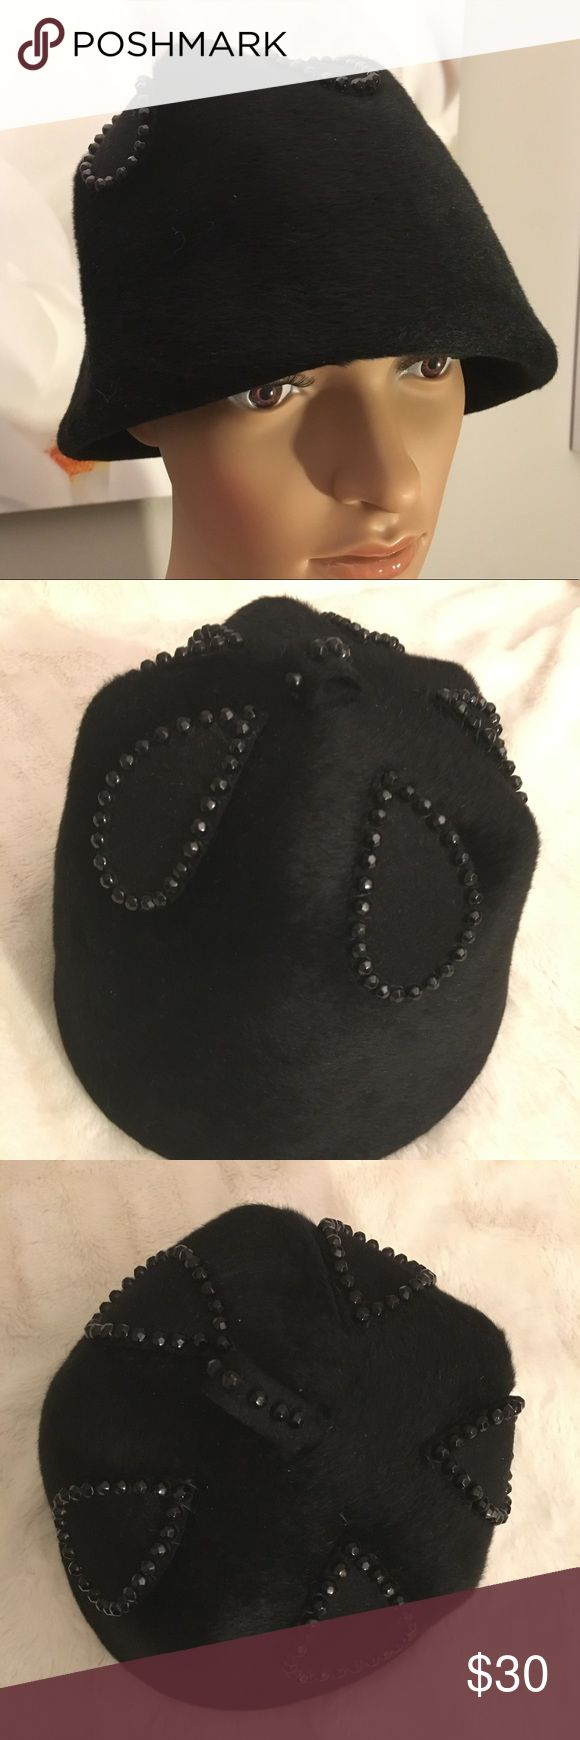 """💕Vintage pony hair hat by Coralie Lovely vintage black pony hair hat styled by Coralie.   Excellent vintage condition.    Circumference measured inside at tag is 21"""". Height is 5.5""""  Check out my other listings to bundle and save 🎉 Vintage Accessories Hats"""